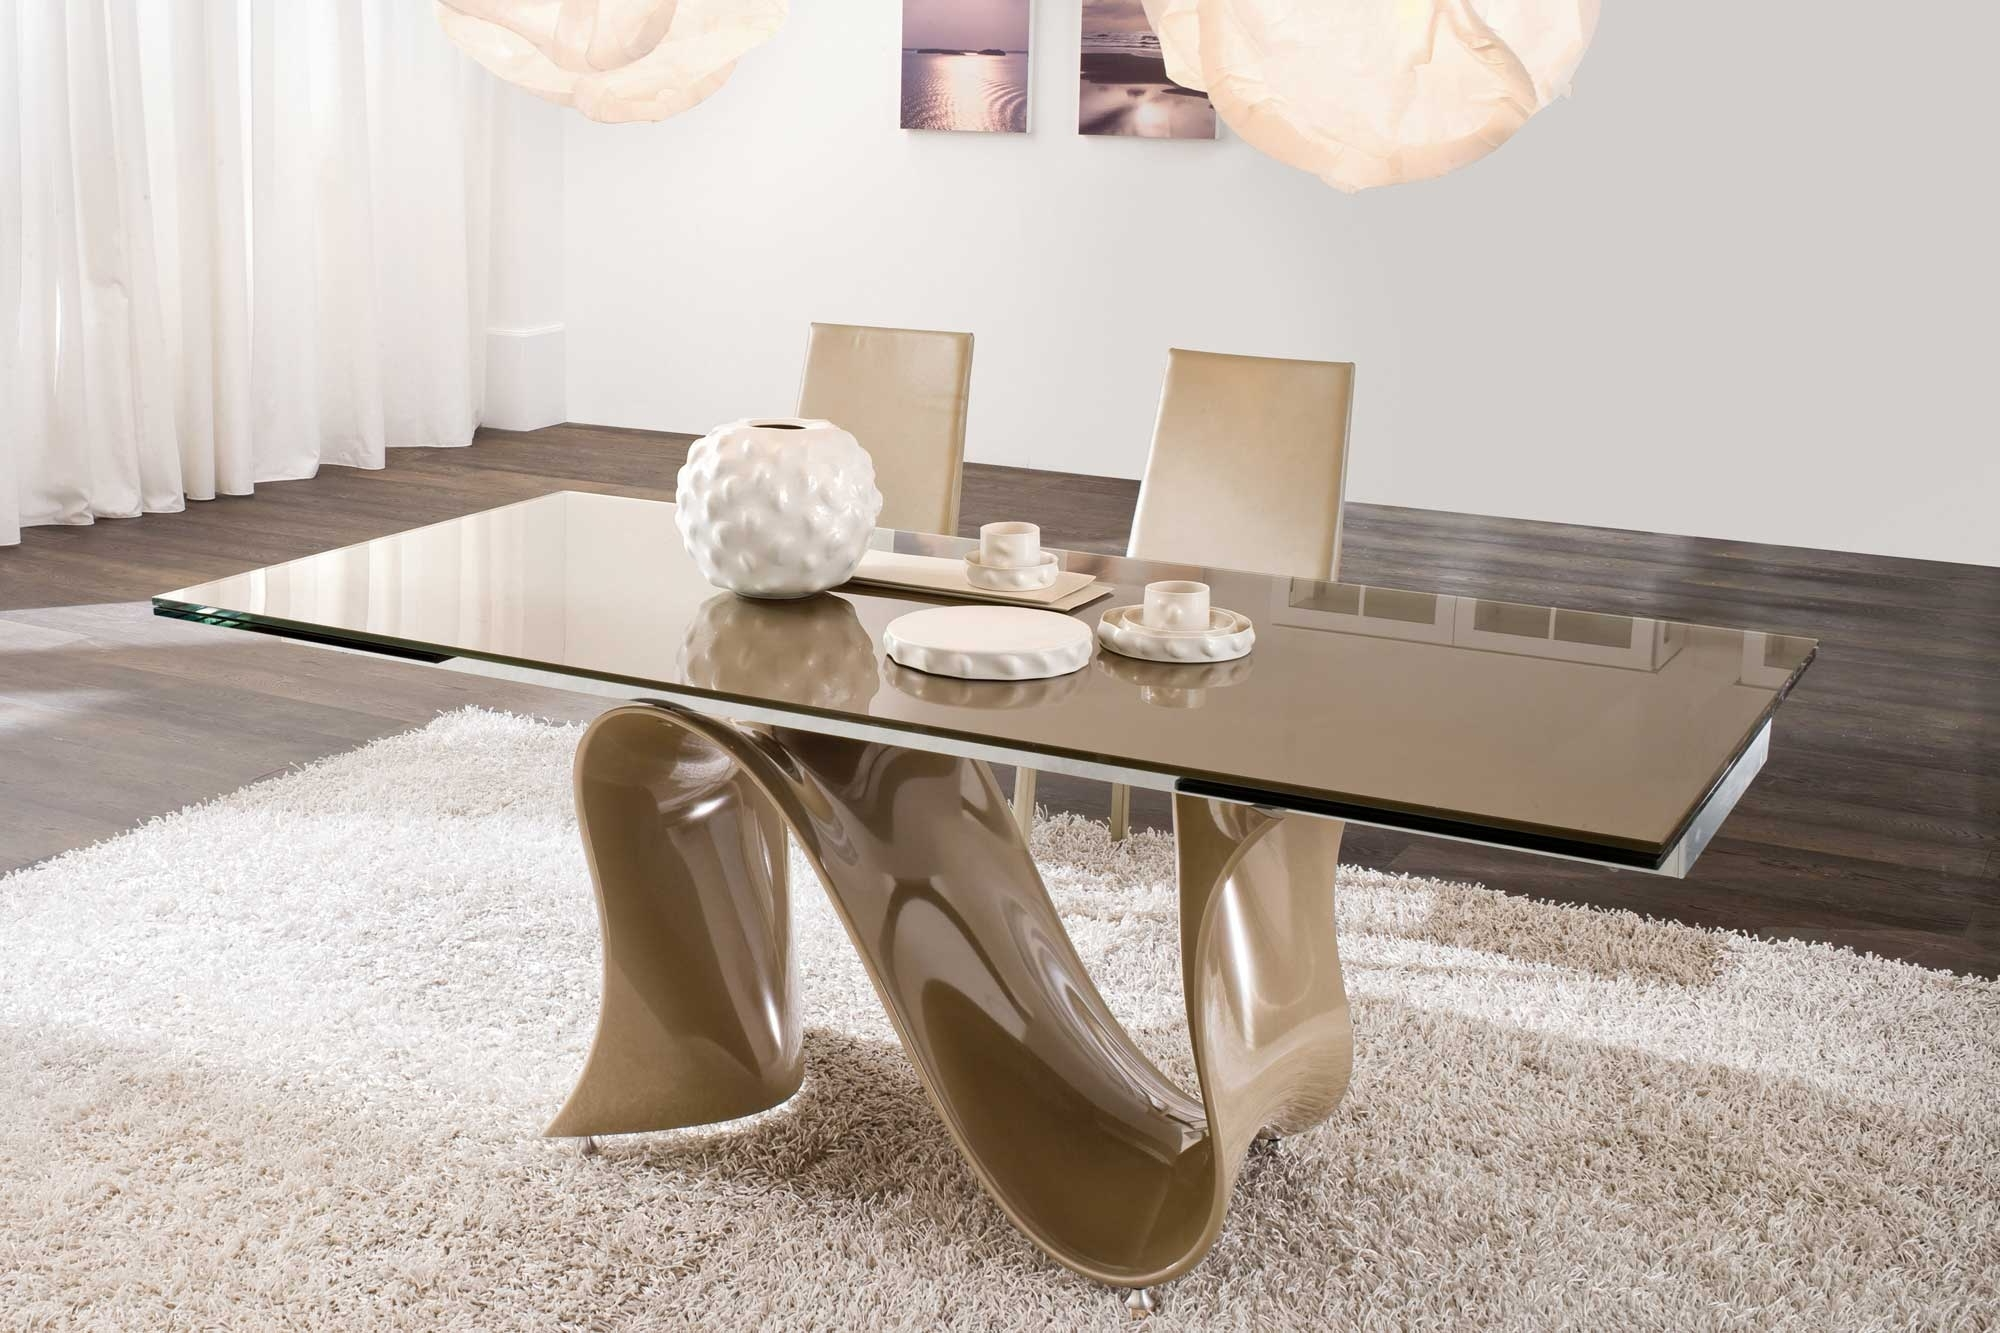 Dining Room Contemporary Furniture Dining Table Contemporary Dinette Throughout 2018 Contemporary Dining Room Tables And Chairs (Gallery 21 of 25)